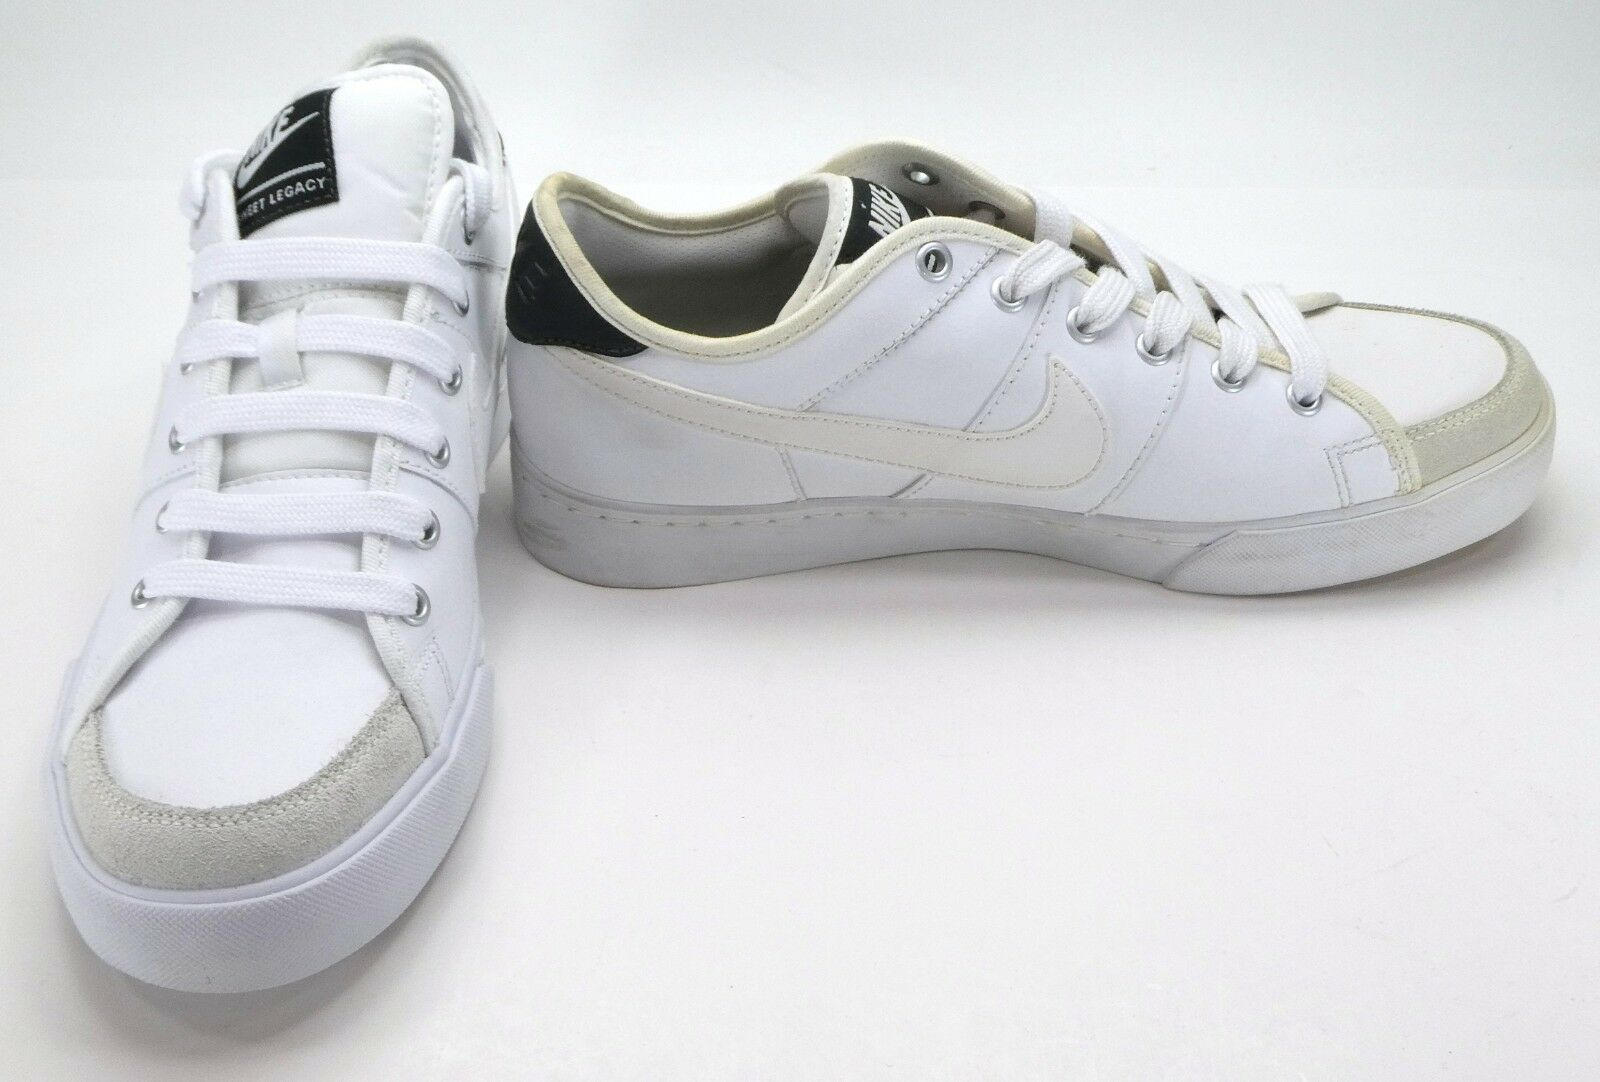 Nike shoes Sweet Legacy Retro Leather White Sneakers Size 9